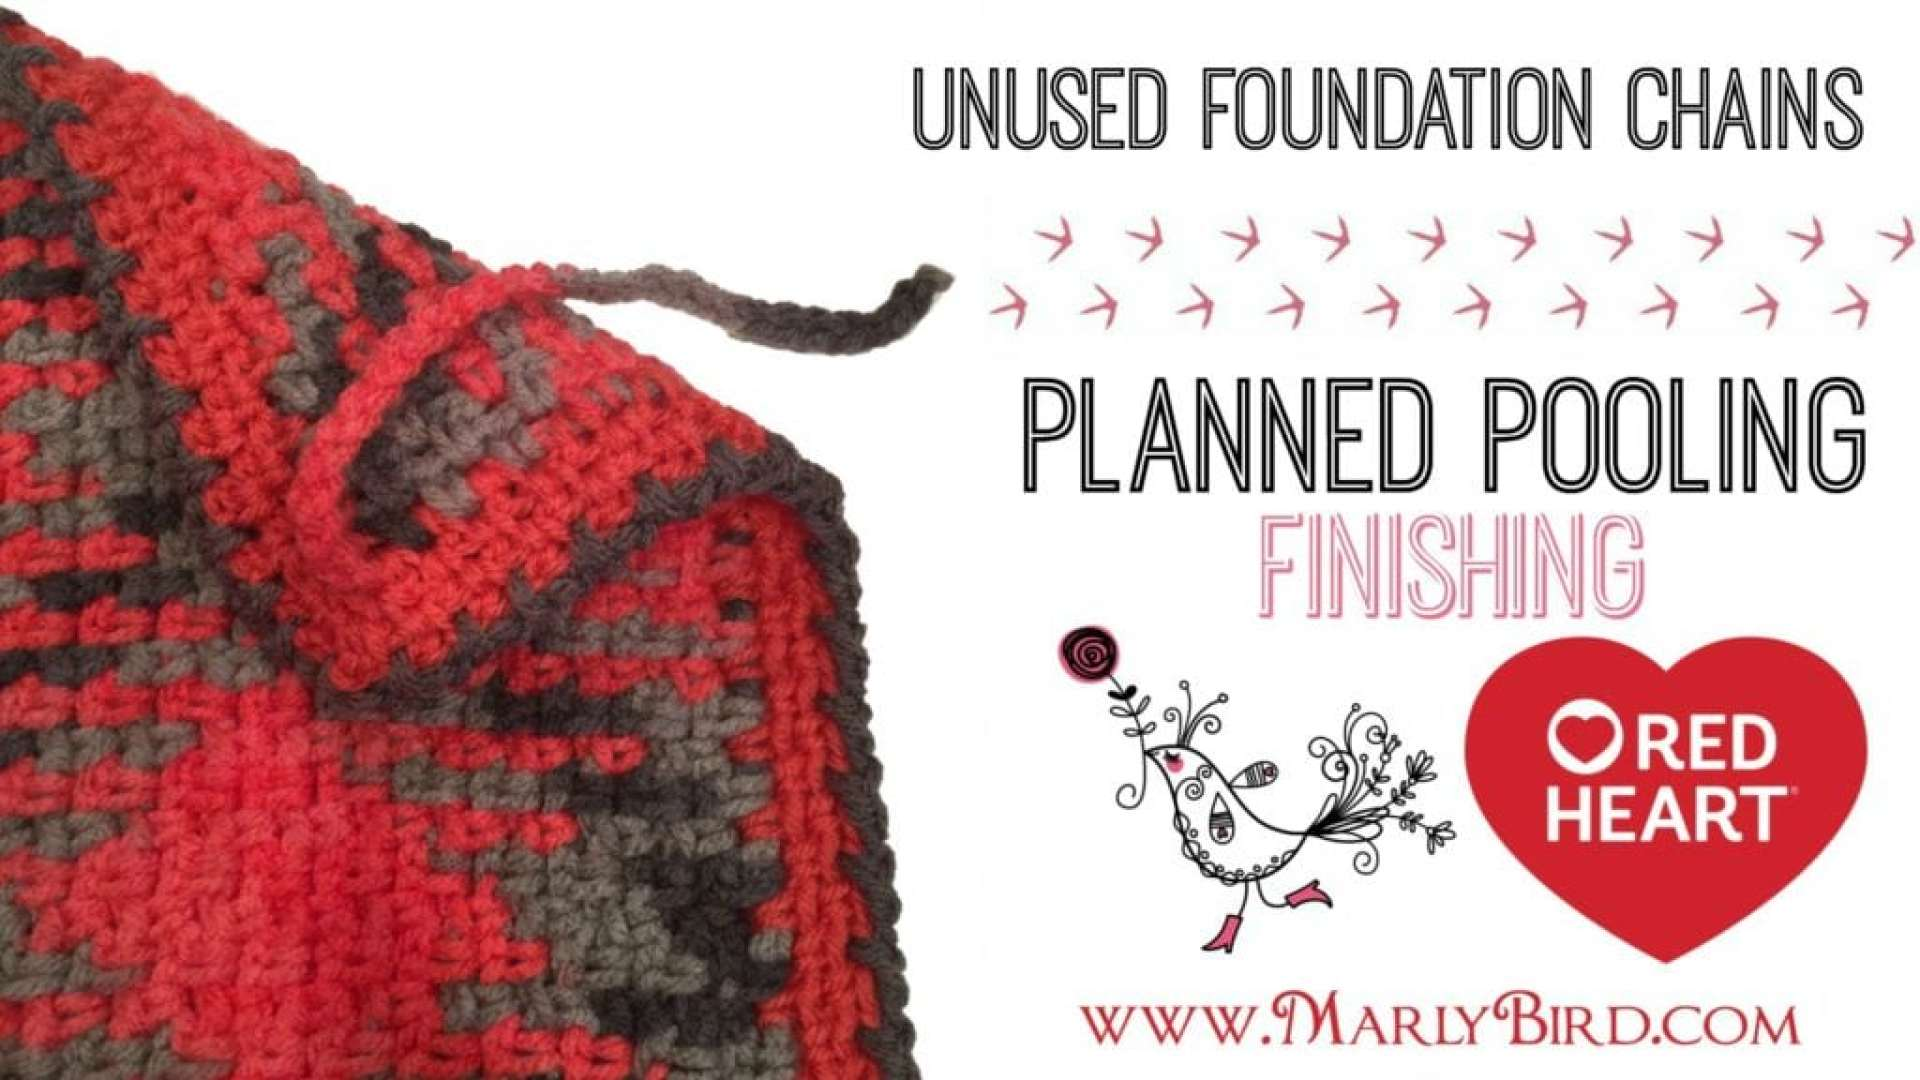 Planned Pooling Crochet Finishing Starting Chains with Marly Bird